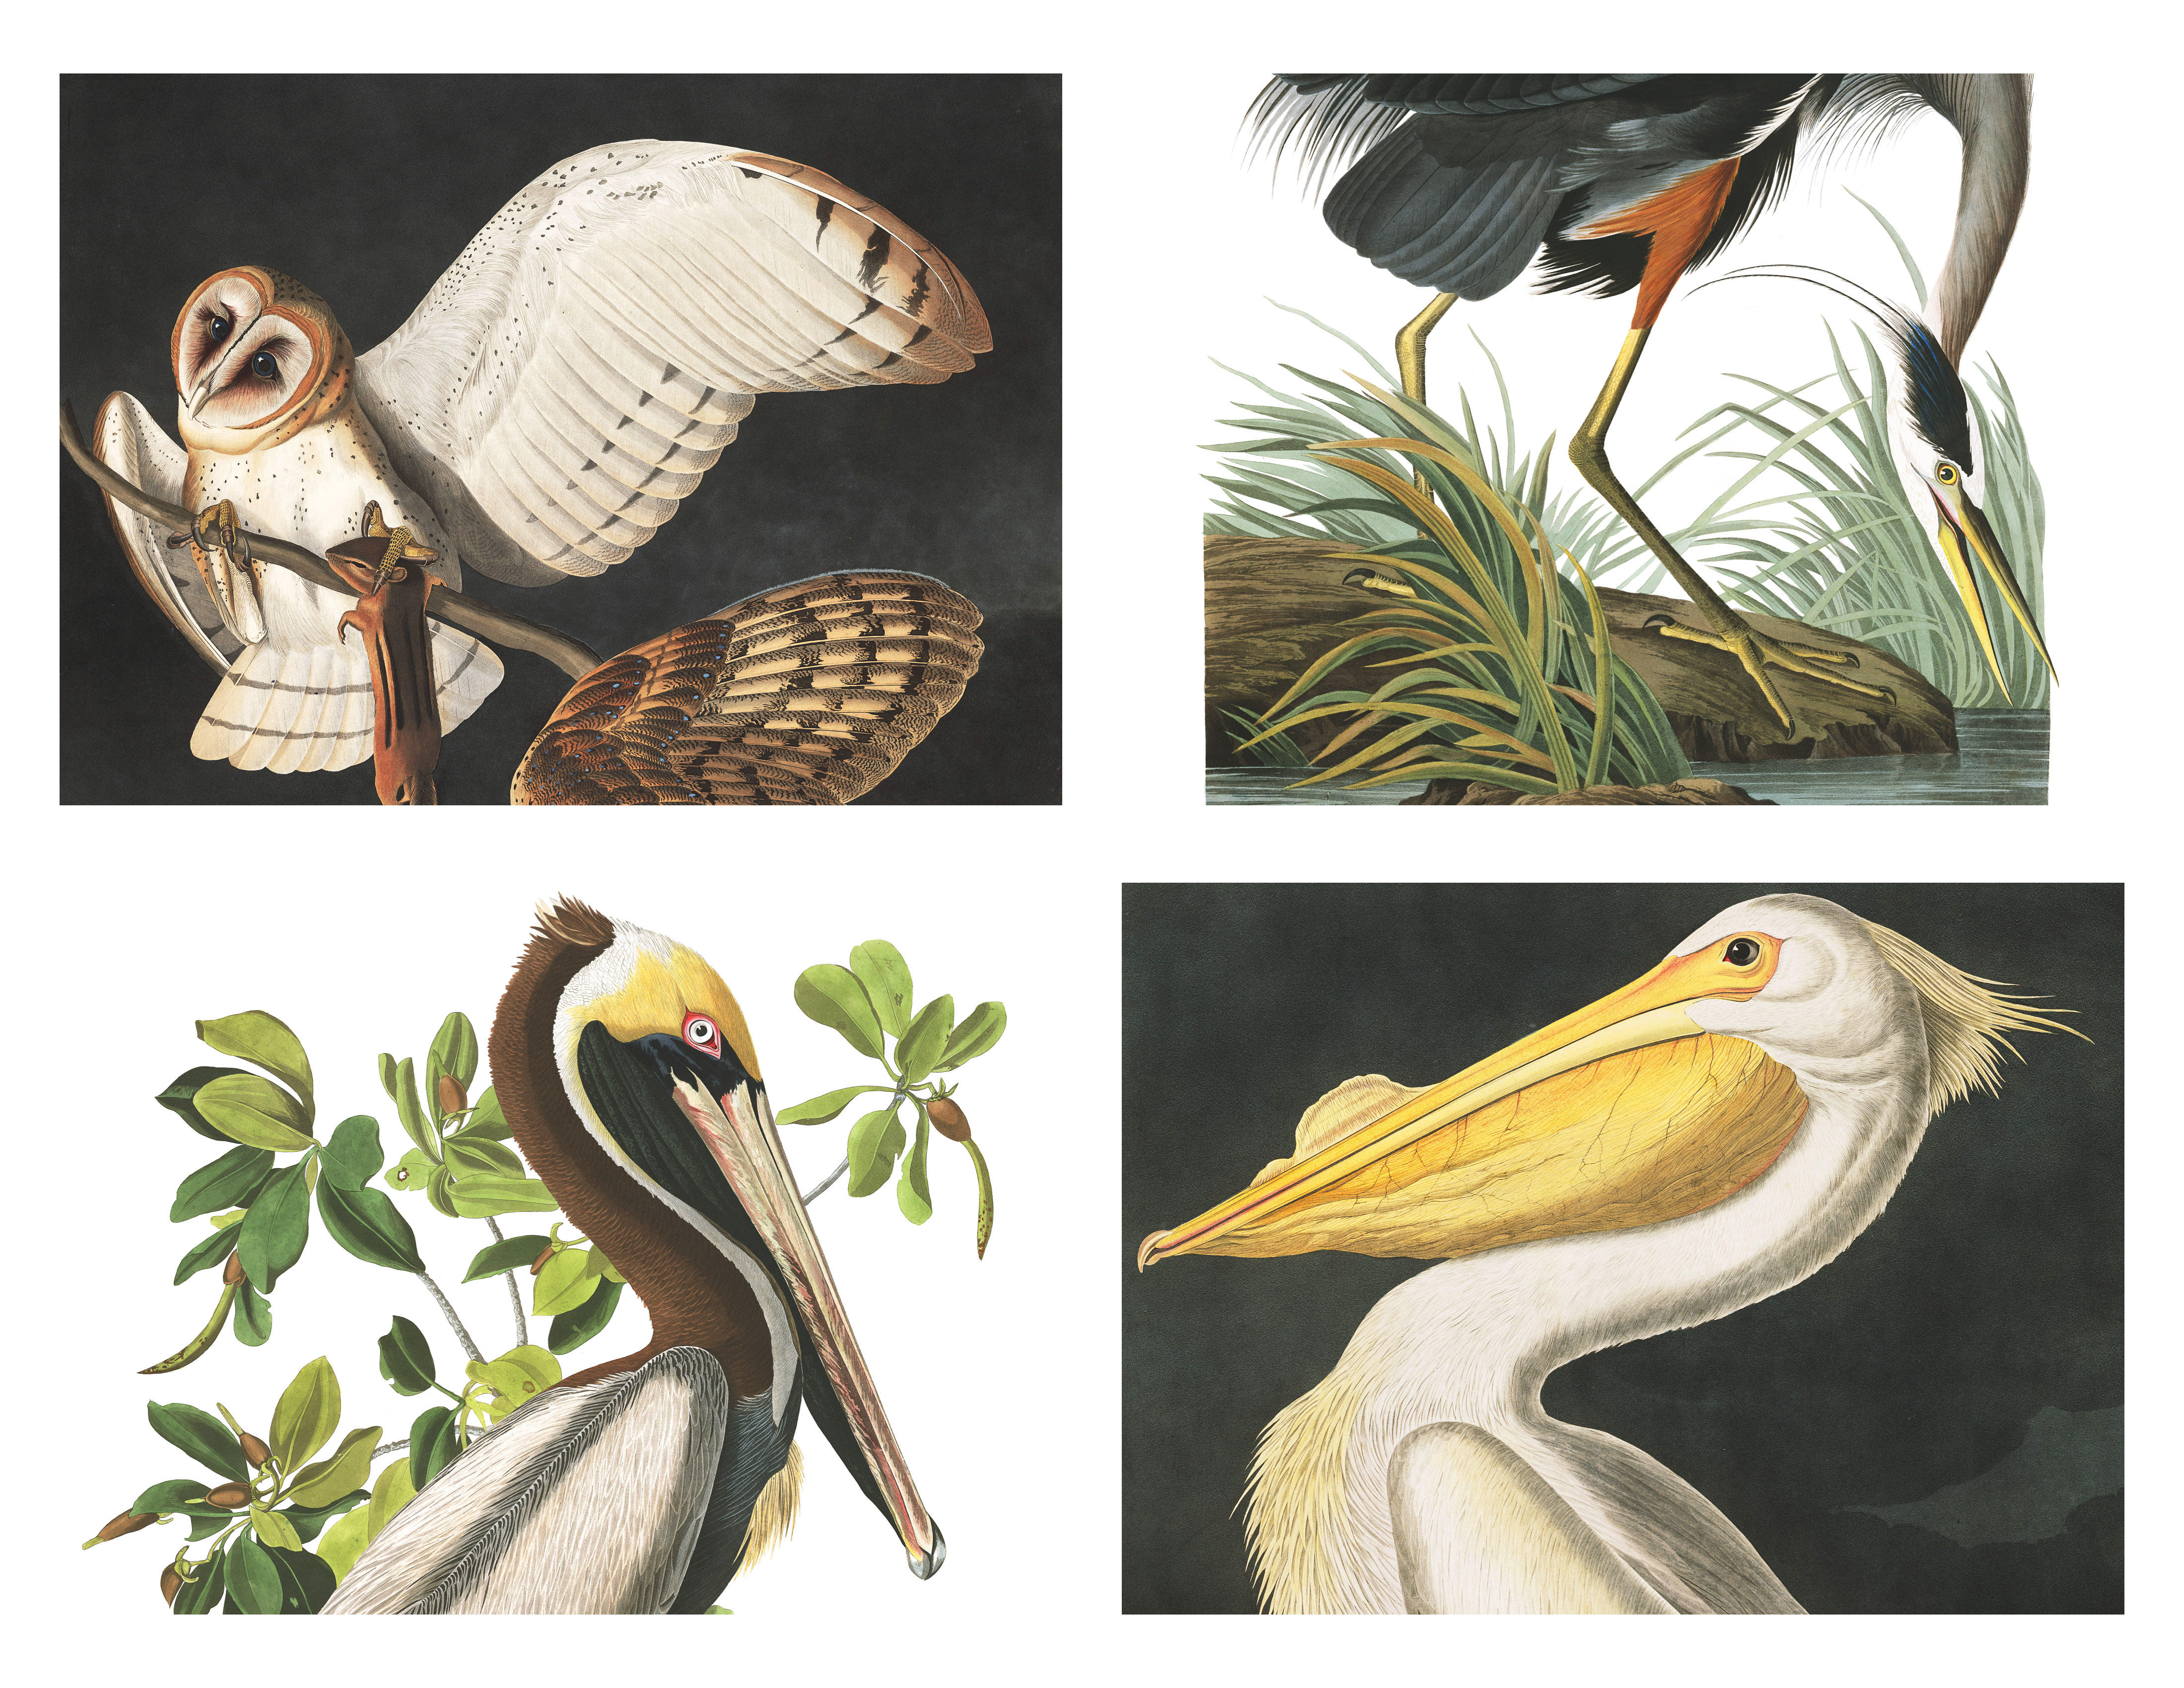 In the 1820s and 1830s, James Audubon traveled a young United States to paint hundreds of species of birds. Clockwise from upper left: Barn owl, great blue heron, brown pelican, American white pelican.